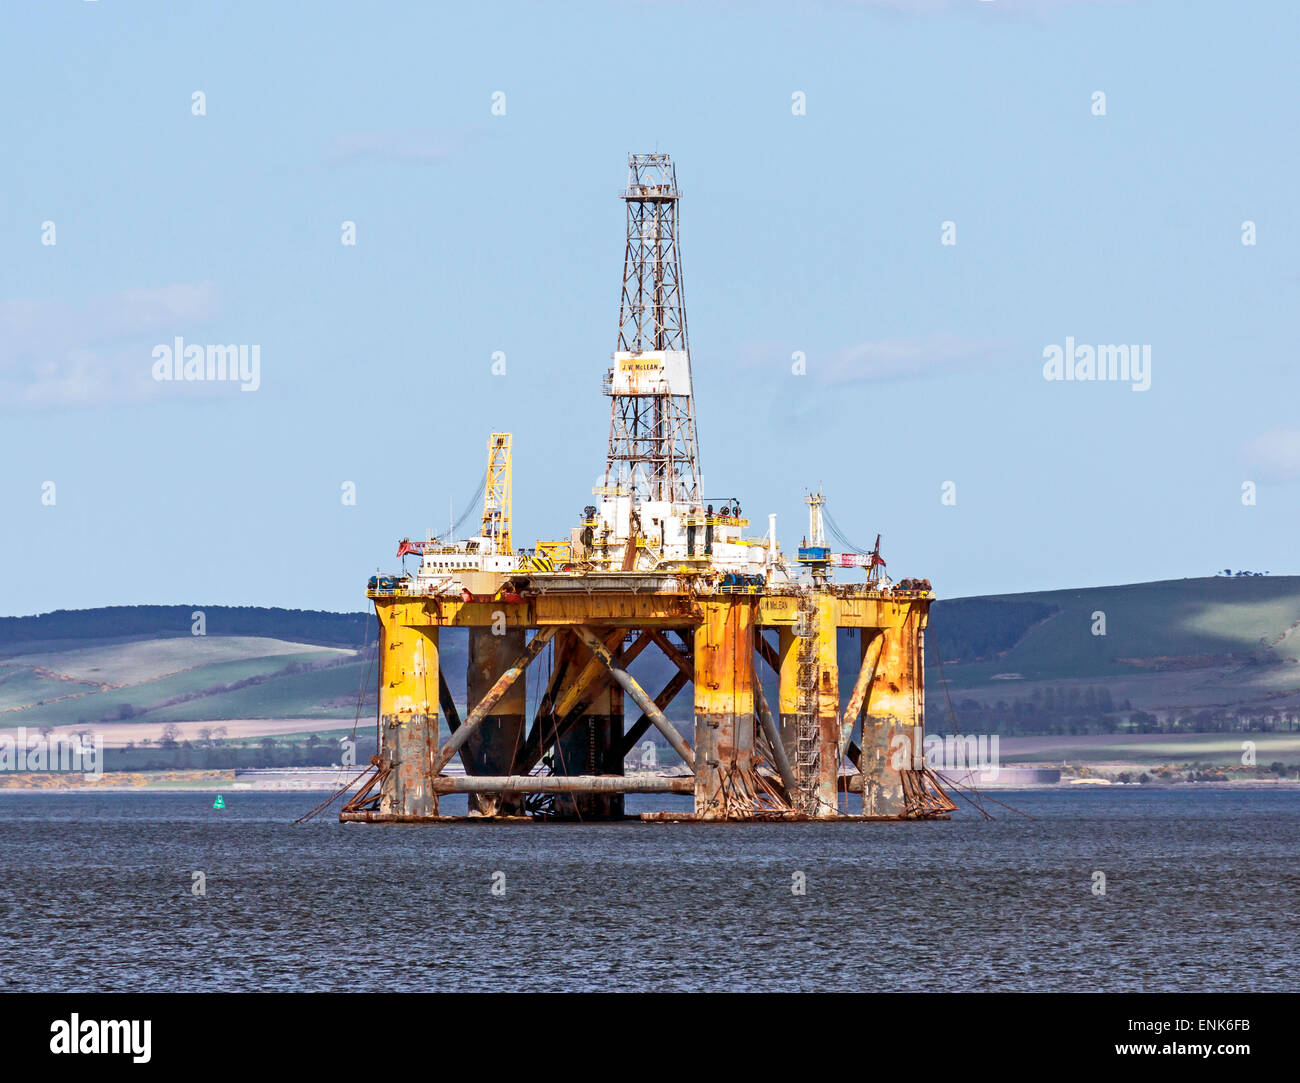 Rig J. W. McLean anchored in the Cromarty Firth at the Black Isle Highland Scotland - Stock Image